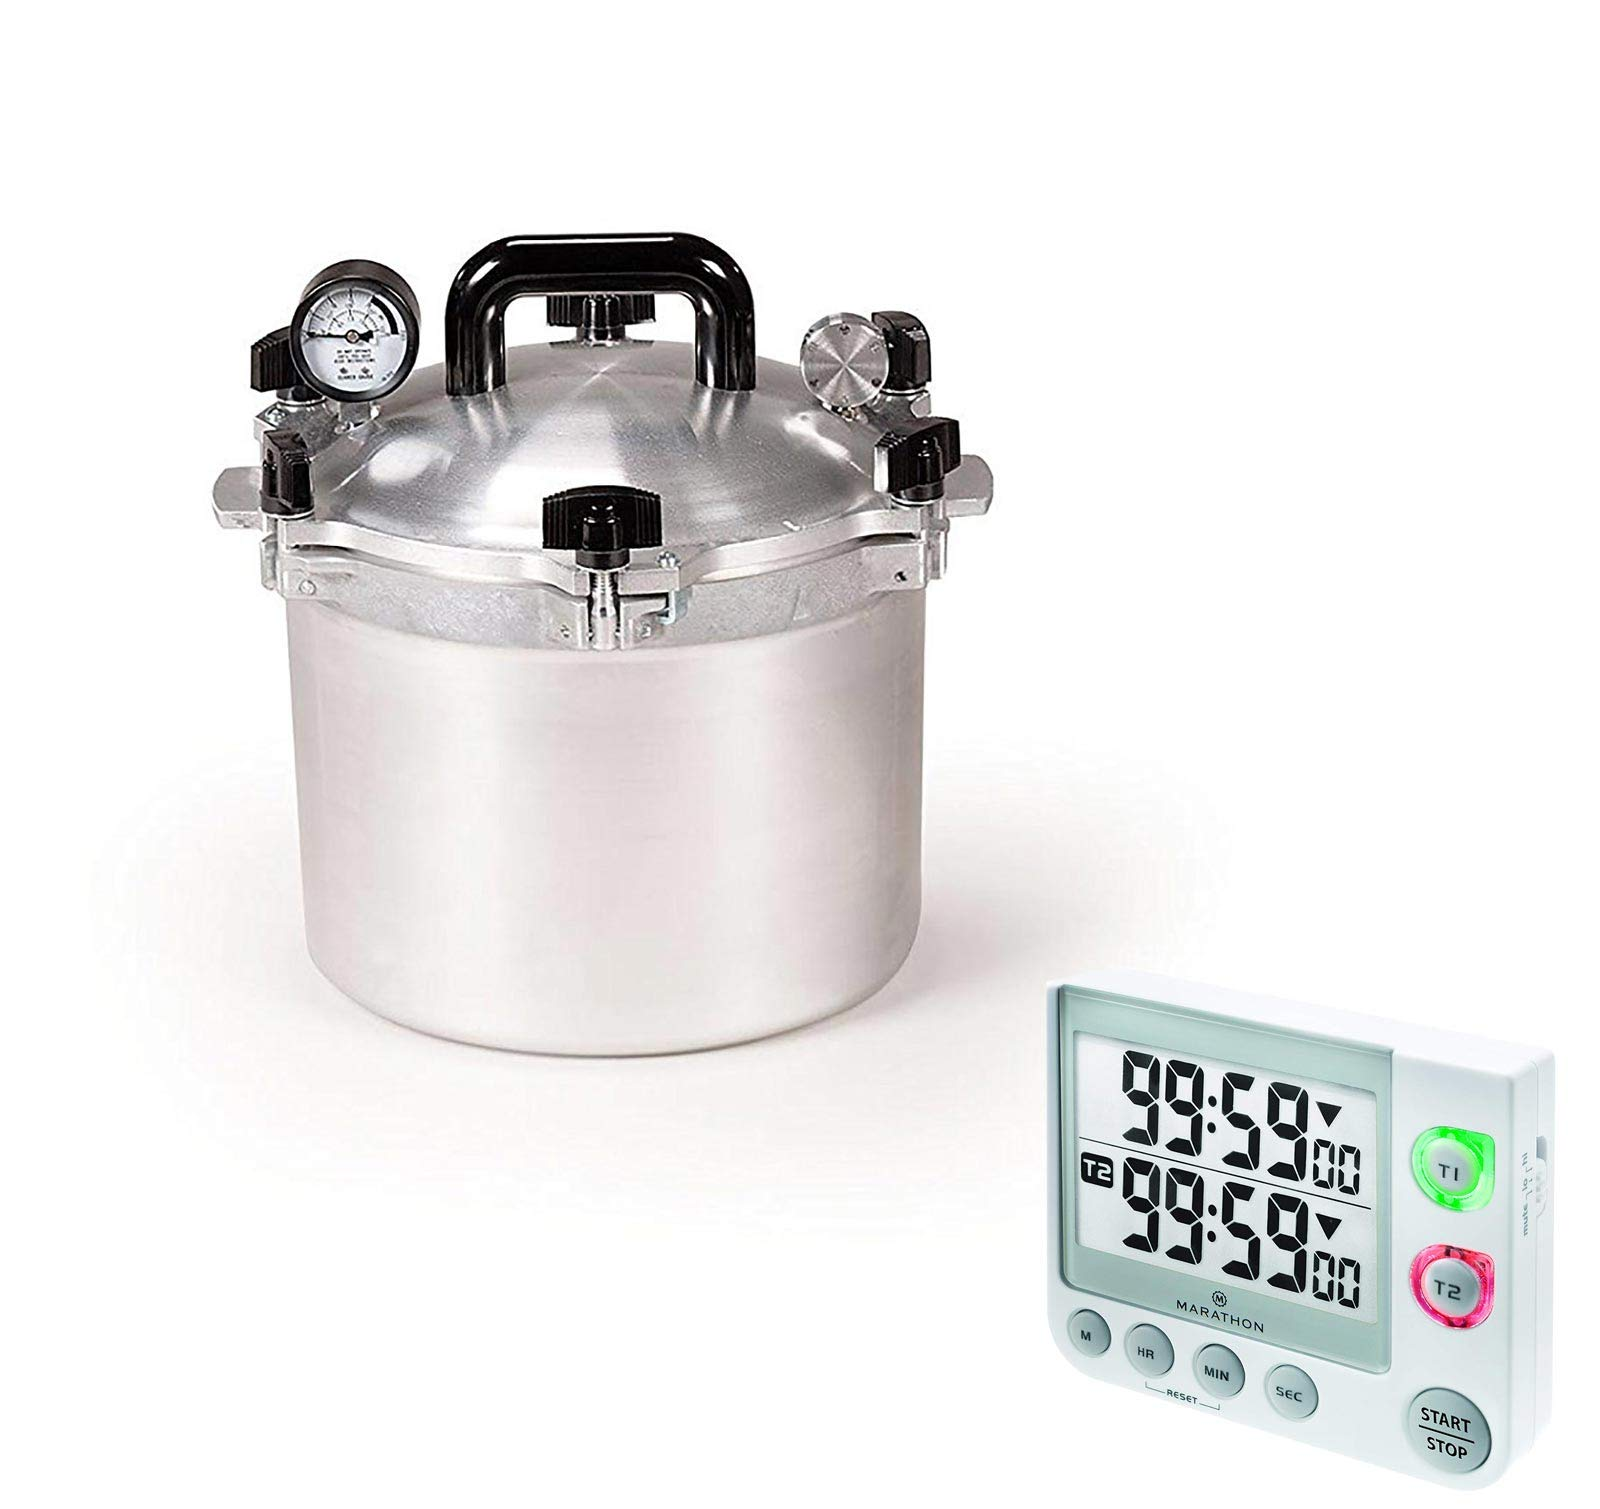 All American Precision Machined Pressure Cooker/Canner Bundle with Marathon TI030017WH Large Display 100 Hour Timer - (White) 10.5 QT